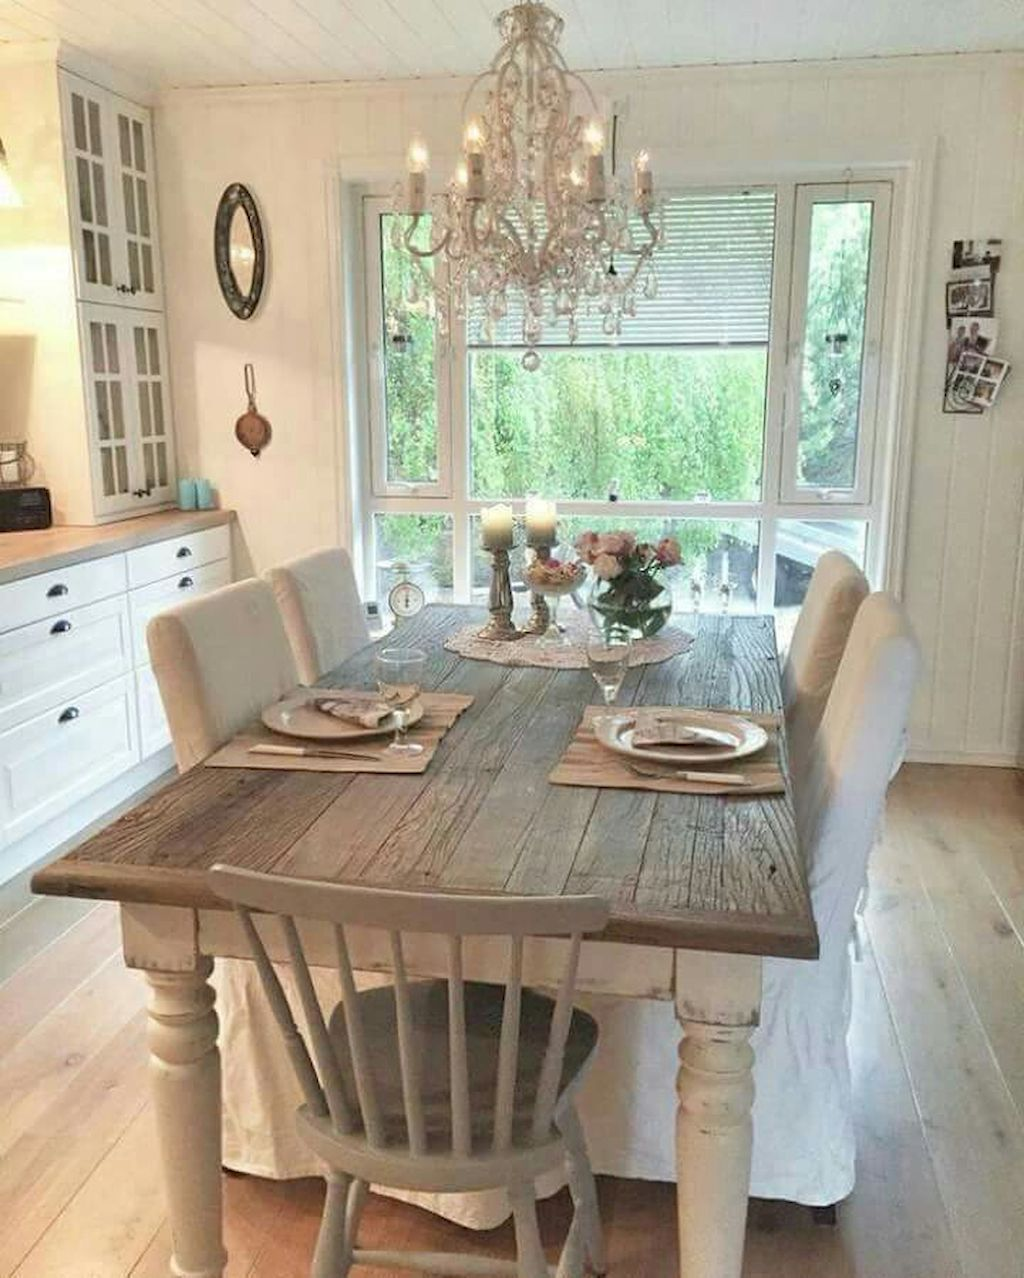 Feast Your Eyes Gorgeous Dining Room Decorating Ideas: French Country Dining Room Table And Decor Ideas (50